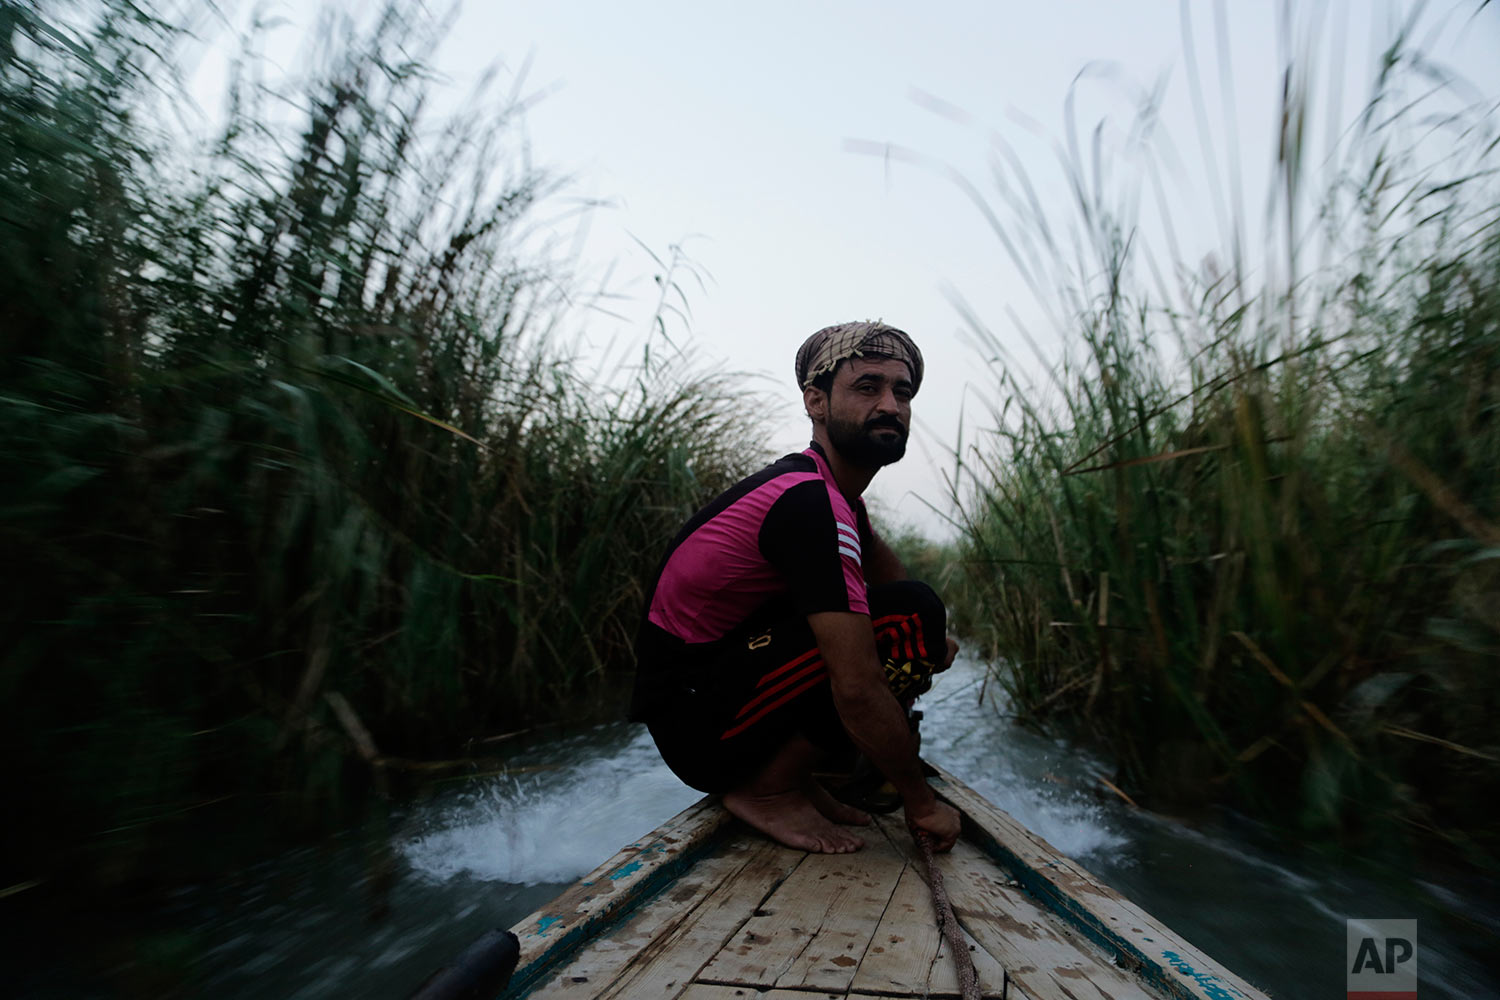 In this Sept. 11, 2017 photo, a young man drives a boat through a tunnel of towering reeds, in the marsh of Chabaish, Iraq, Sept. 11, 2017. Increasingly unable to support their families with fishing and farming, hundreds of young men from the area took up arms in the fight against the Islamic State group, joining state-sanctioned Shiite militias. (AP Photo/Susannah George)